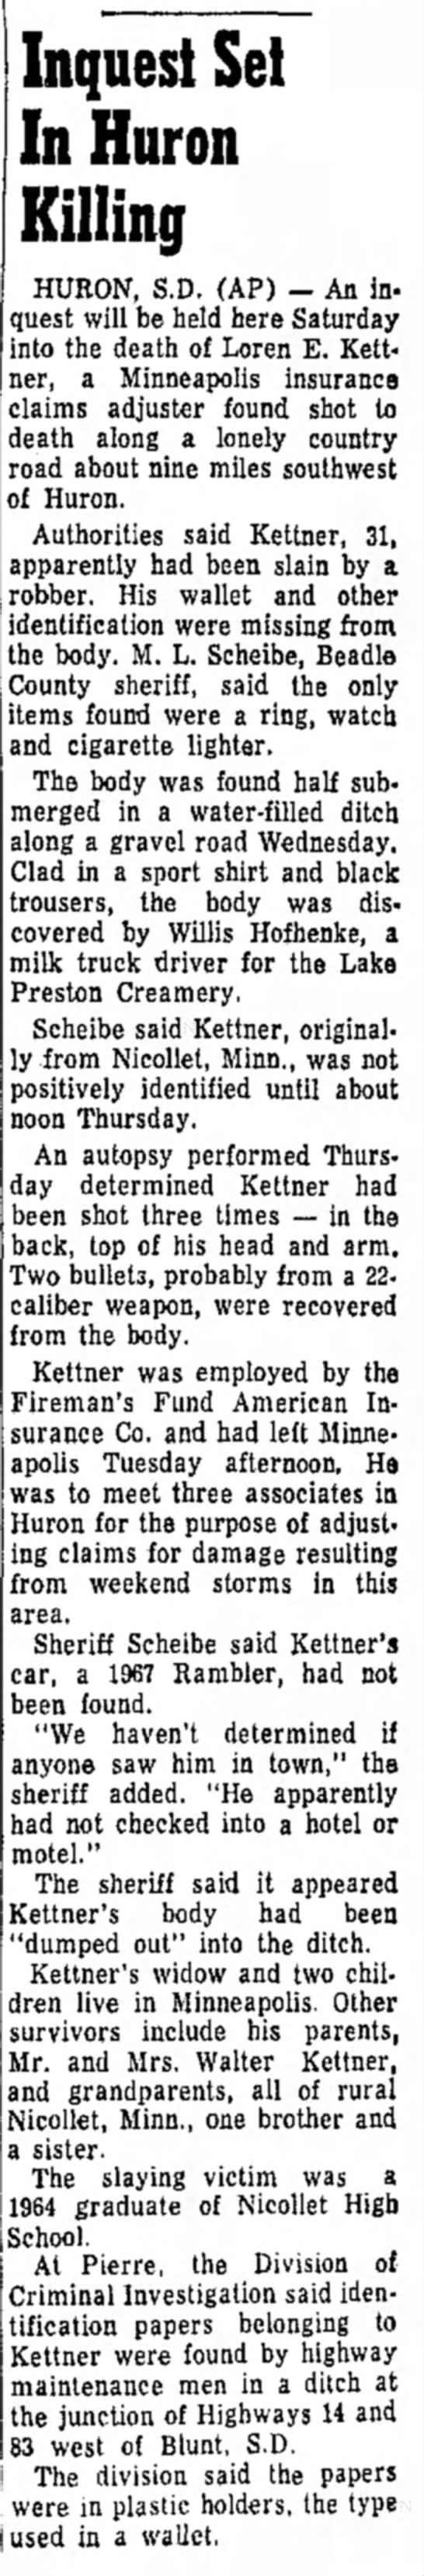 Daily Republic Mitchell, SD  23 June 1967 - Inquest Set In Huron Killing HURON, S.D. (AP) —...